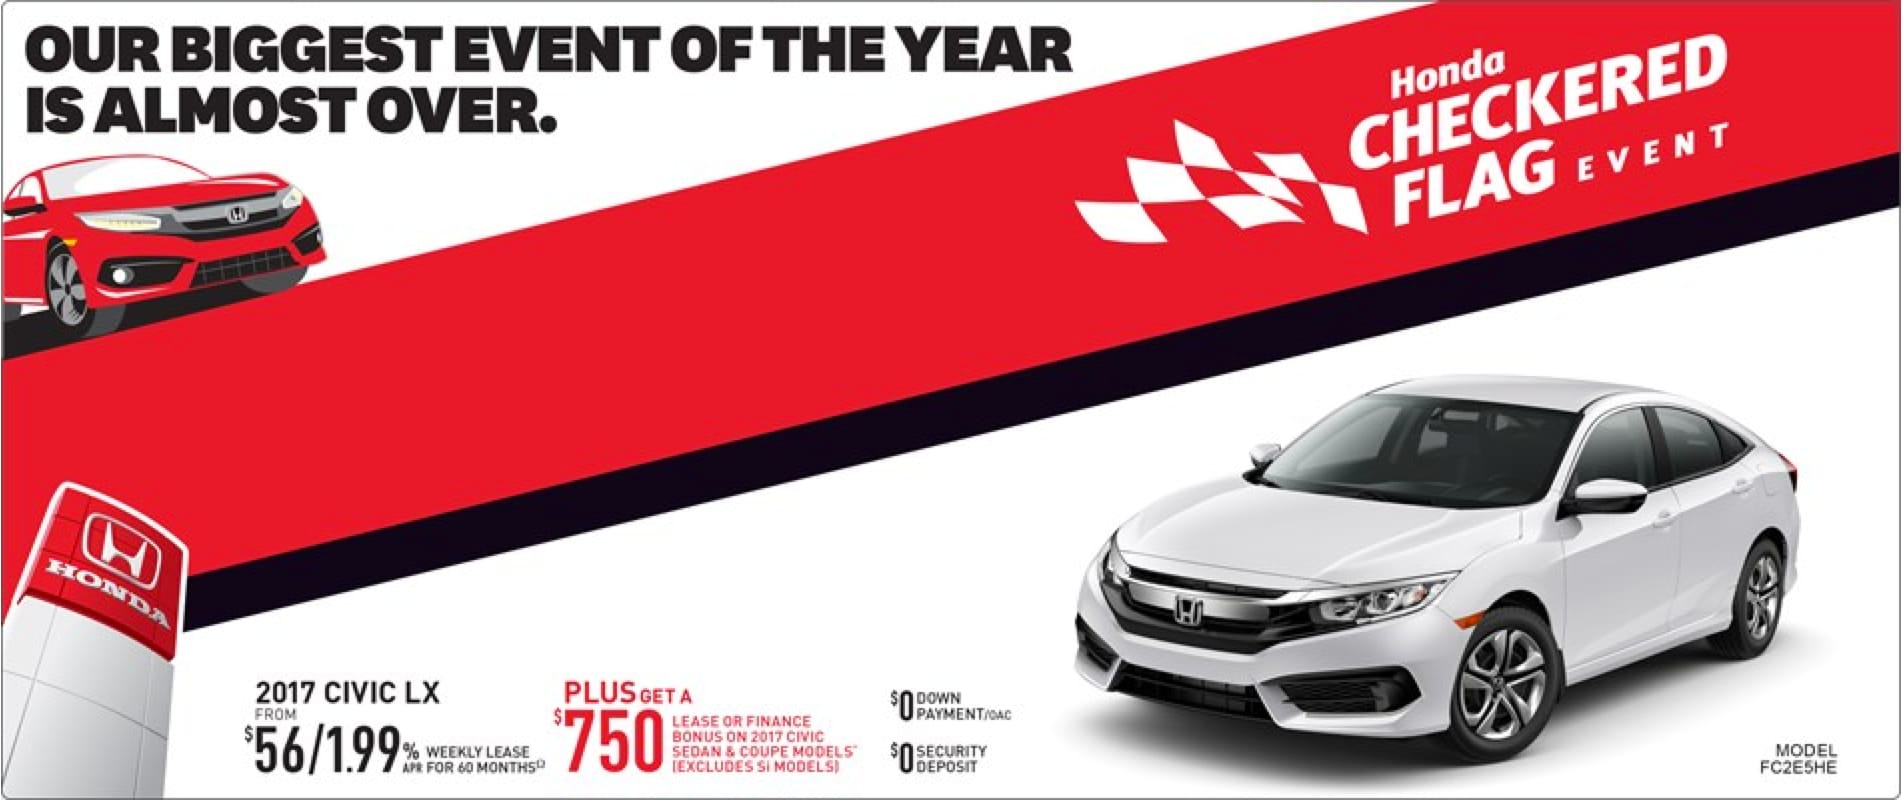 Honda lease specials current offers honda financial for Honda financial services mailing address